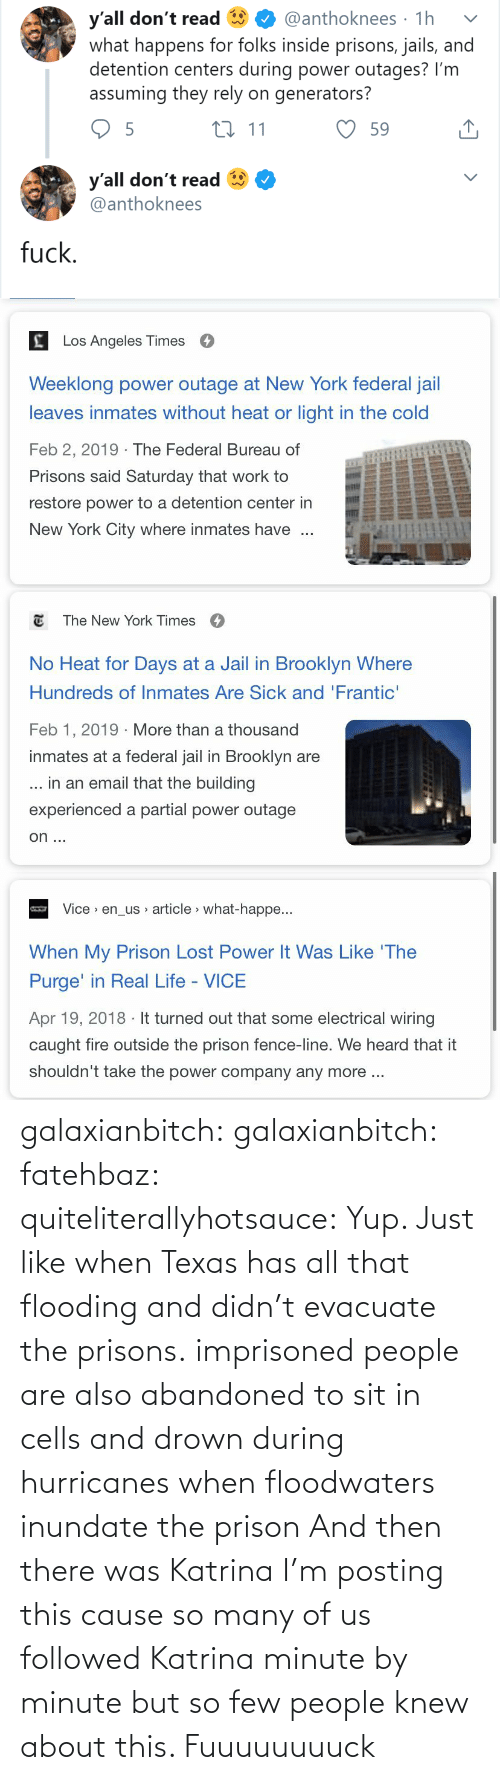 Shouldnt: y'all don't read  what happens for folks inside prisons, jails, and  detention centers during power outages? I'm  assuming they rely on generators?  @anthoknees · 1h  27 11  59  y'all don't read  @anthoknees  fuck.   Los Angeles Times  Weeklong power outage at New York federal jail  leaves inmates without heat or light in the cold  Feb 2, 2019 · The Federal Bureau of  Prisons said Saturday that work to  restore power to a detention center in  New York City where inmates have   E The New York Times  O  No Heat for Days at a Jail in Brooklyn Where  Hundreds of Inmates Are Sick and 'Frantic'  Feb 1, 2019 · More than a thousand  inmates at a federal jail in Brooklyn are  ... in an email that the building  experienced a partial power outage  on ...   Vice > en_us article > what-happe...  When My Prison Lost Power It Was Like 'The  Purge' in Real Life - VICE  Apr 19, 2018 · It turned out that some electrical wiring  caught fire outside the prison fence-line. We heard that it  shouldn't take the power company any more .. galaxianbitch: galaxianbitch:   fatehbaz:  quiteliterallyhotsauce:   Yup. Just like when Texas has all that flooding and didn't evacuate the prisons.   imprisoned people are also abandoned to sit in cells and drown during hurricanes when floodwaters inundate the prison   And then there was Katrina        I'm posting this cause so many of us followed Katrina minute by minute but so few people knew about this.    Fuuuuuuuuck